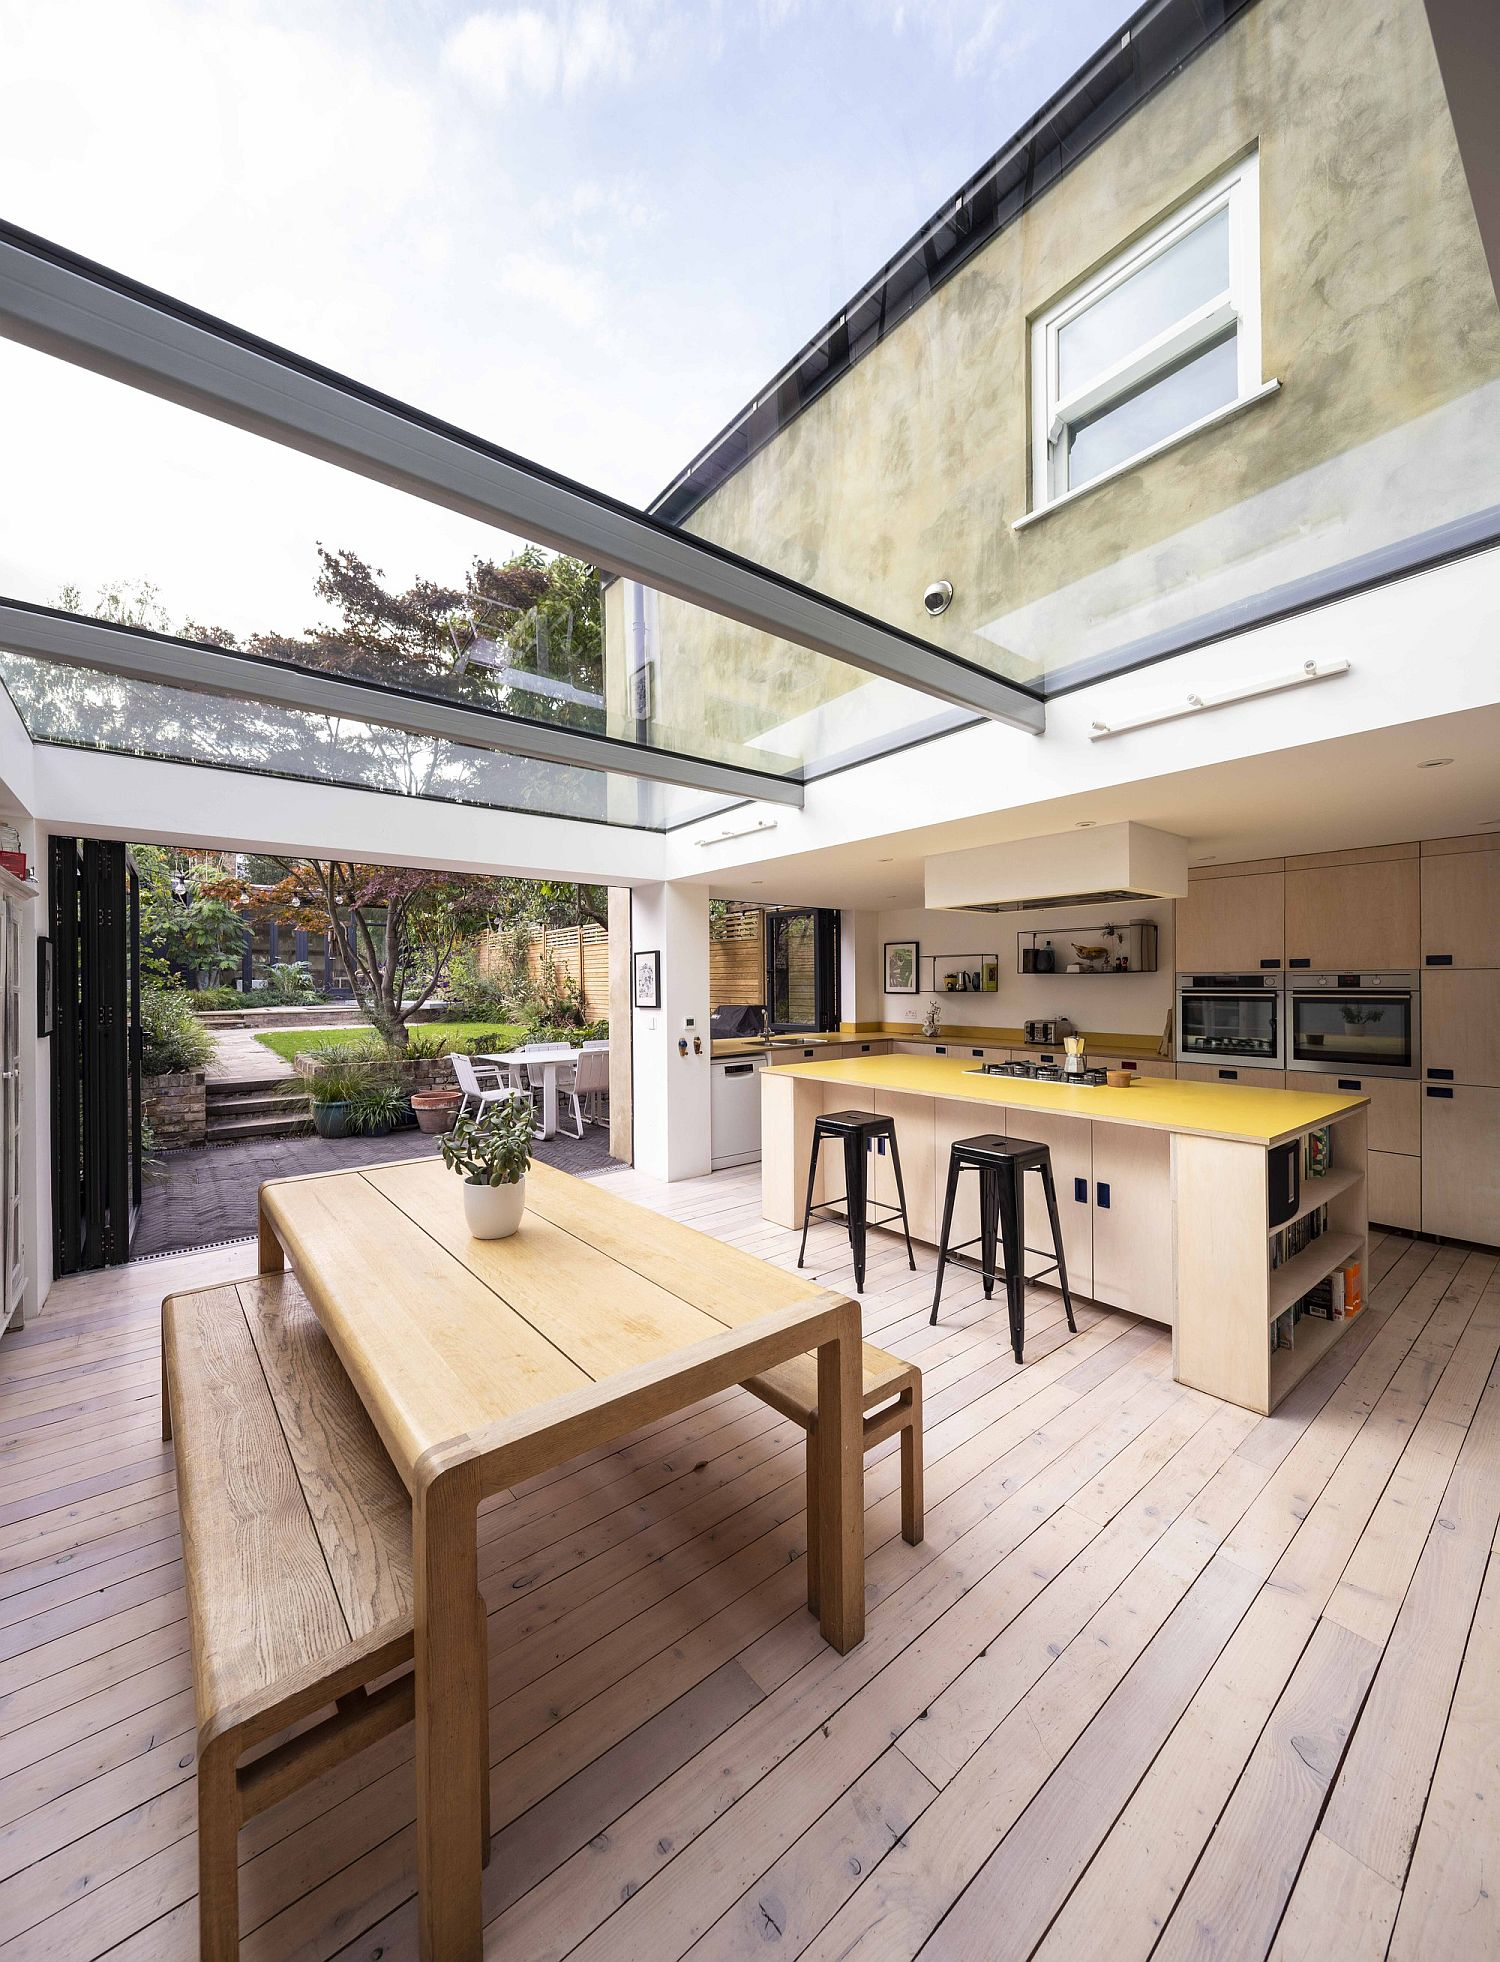 Gorgeous kitchen and dining room of the British home with glass ceiling